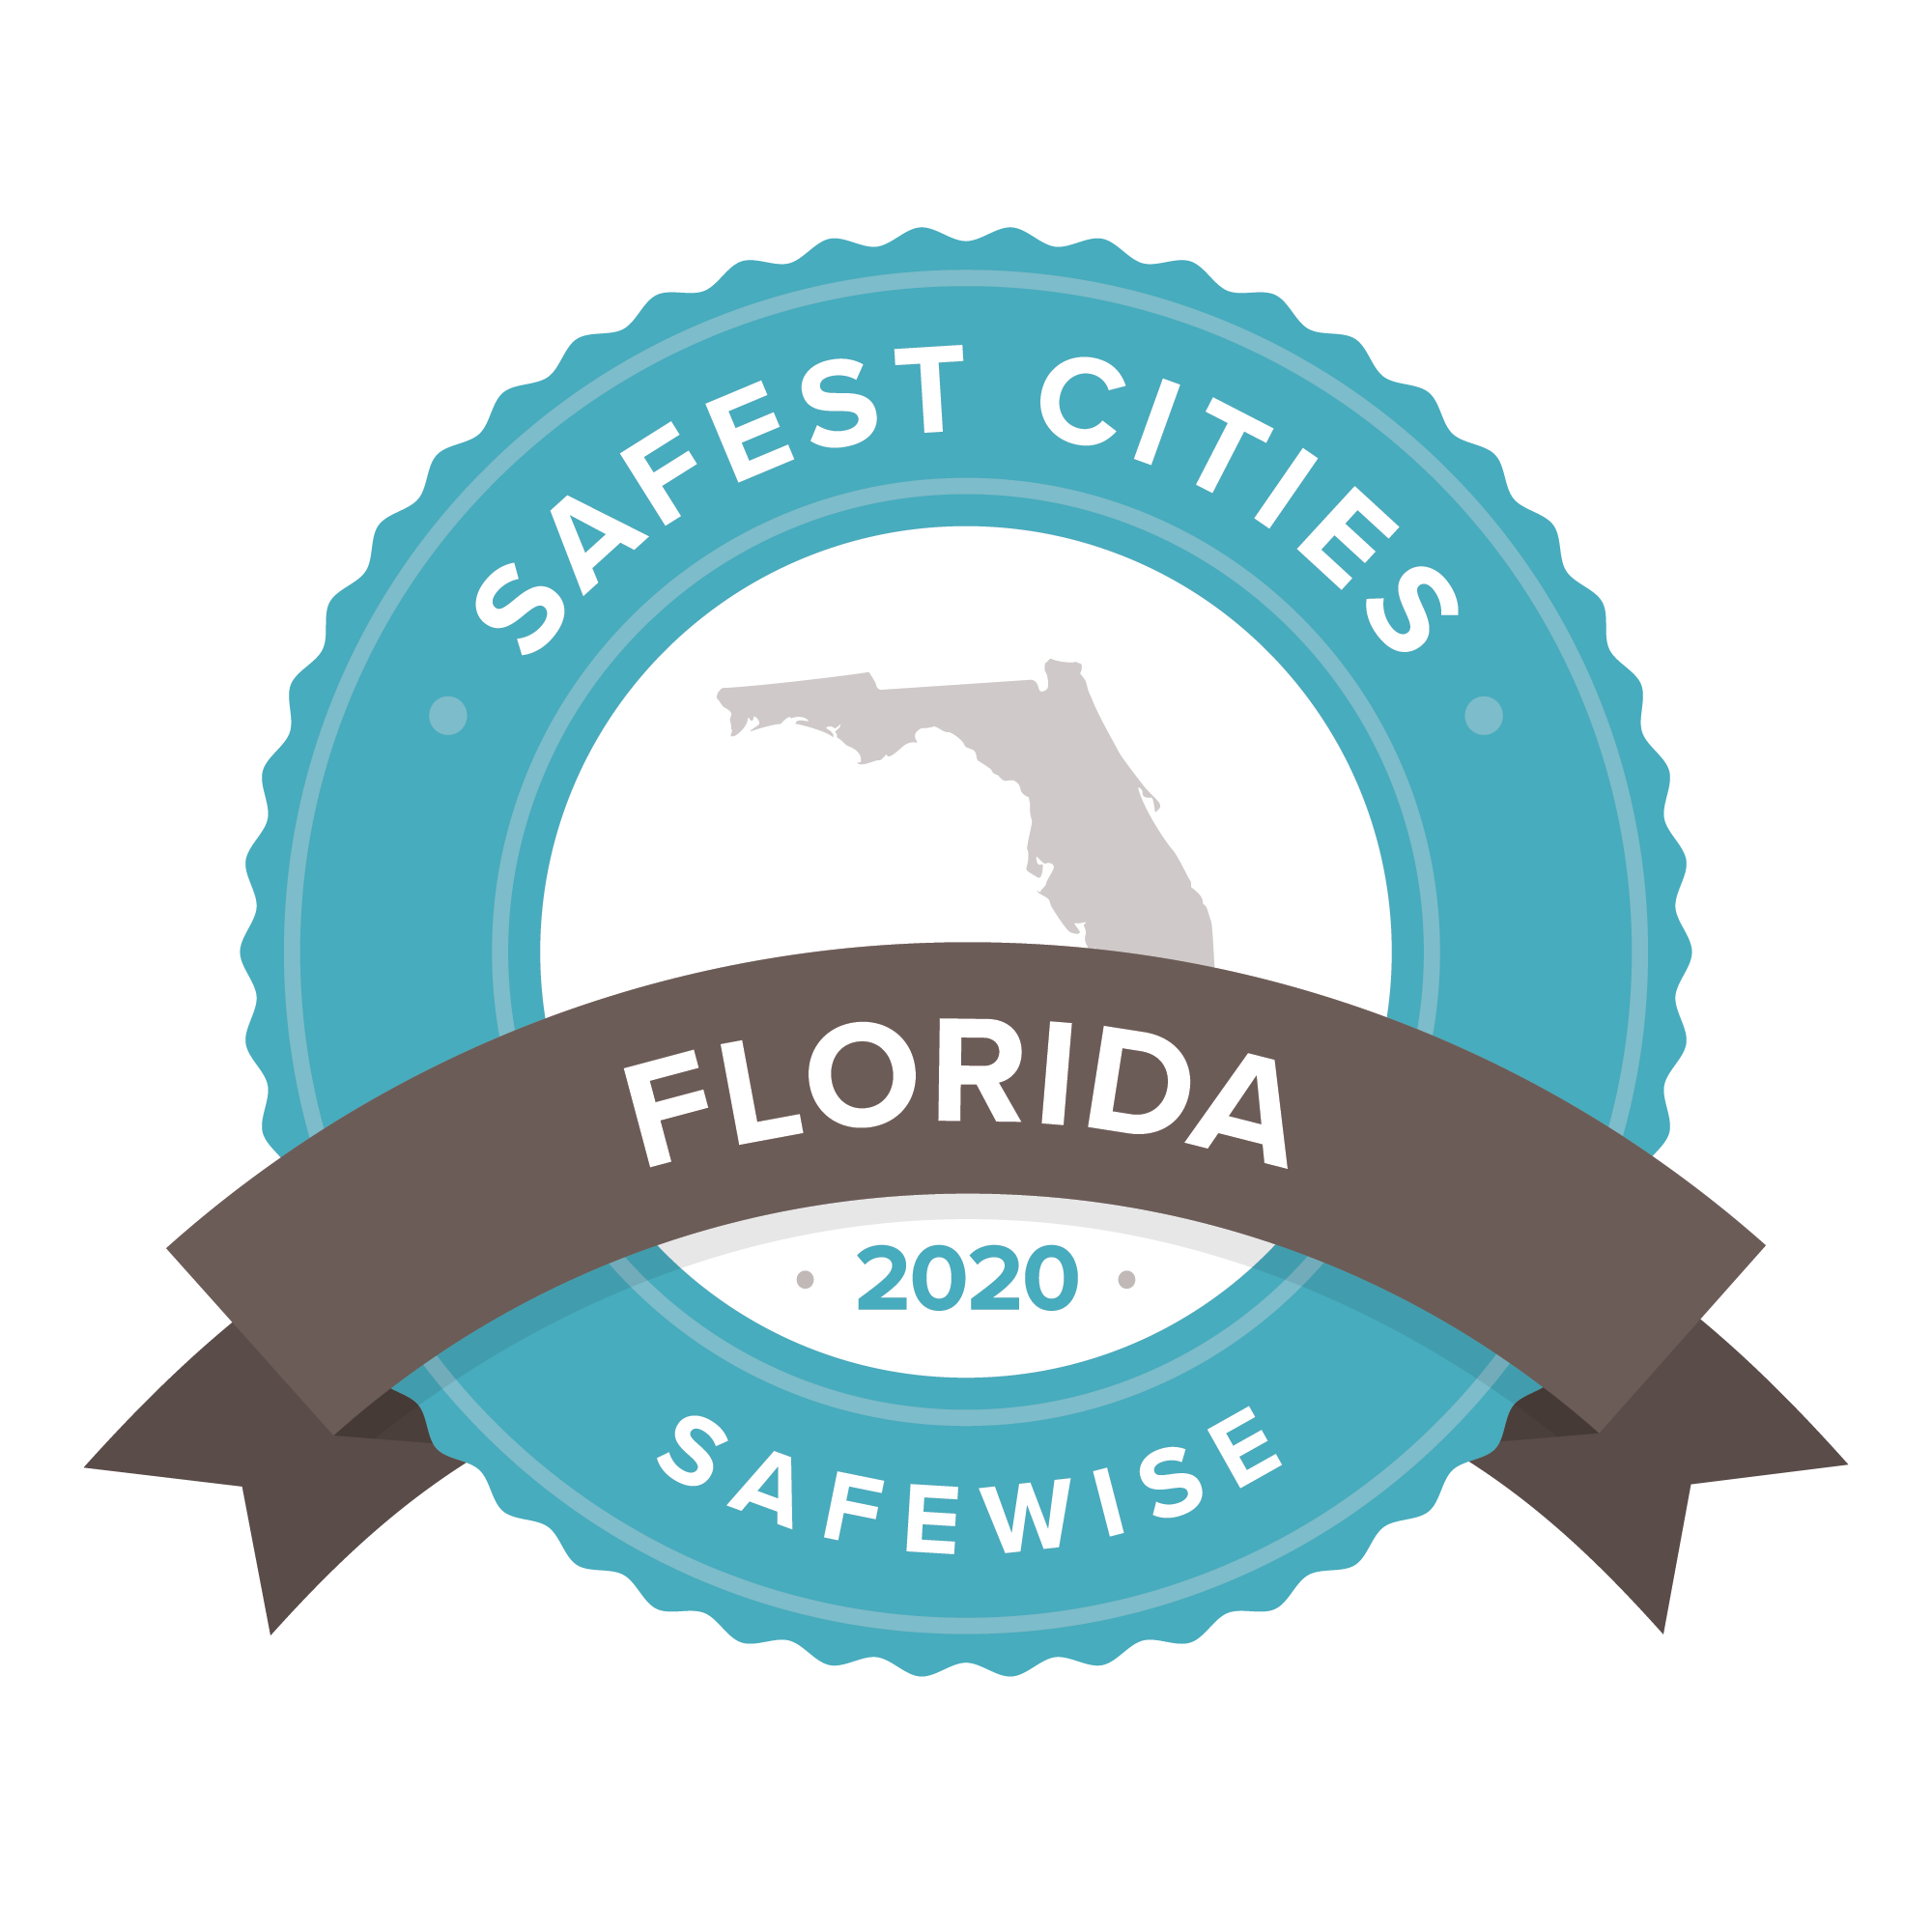 Florida Safest Cities Badge